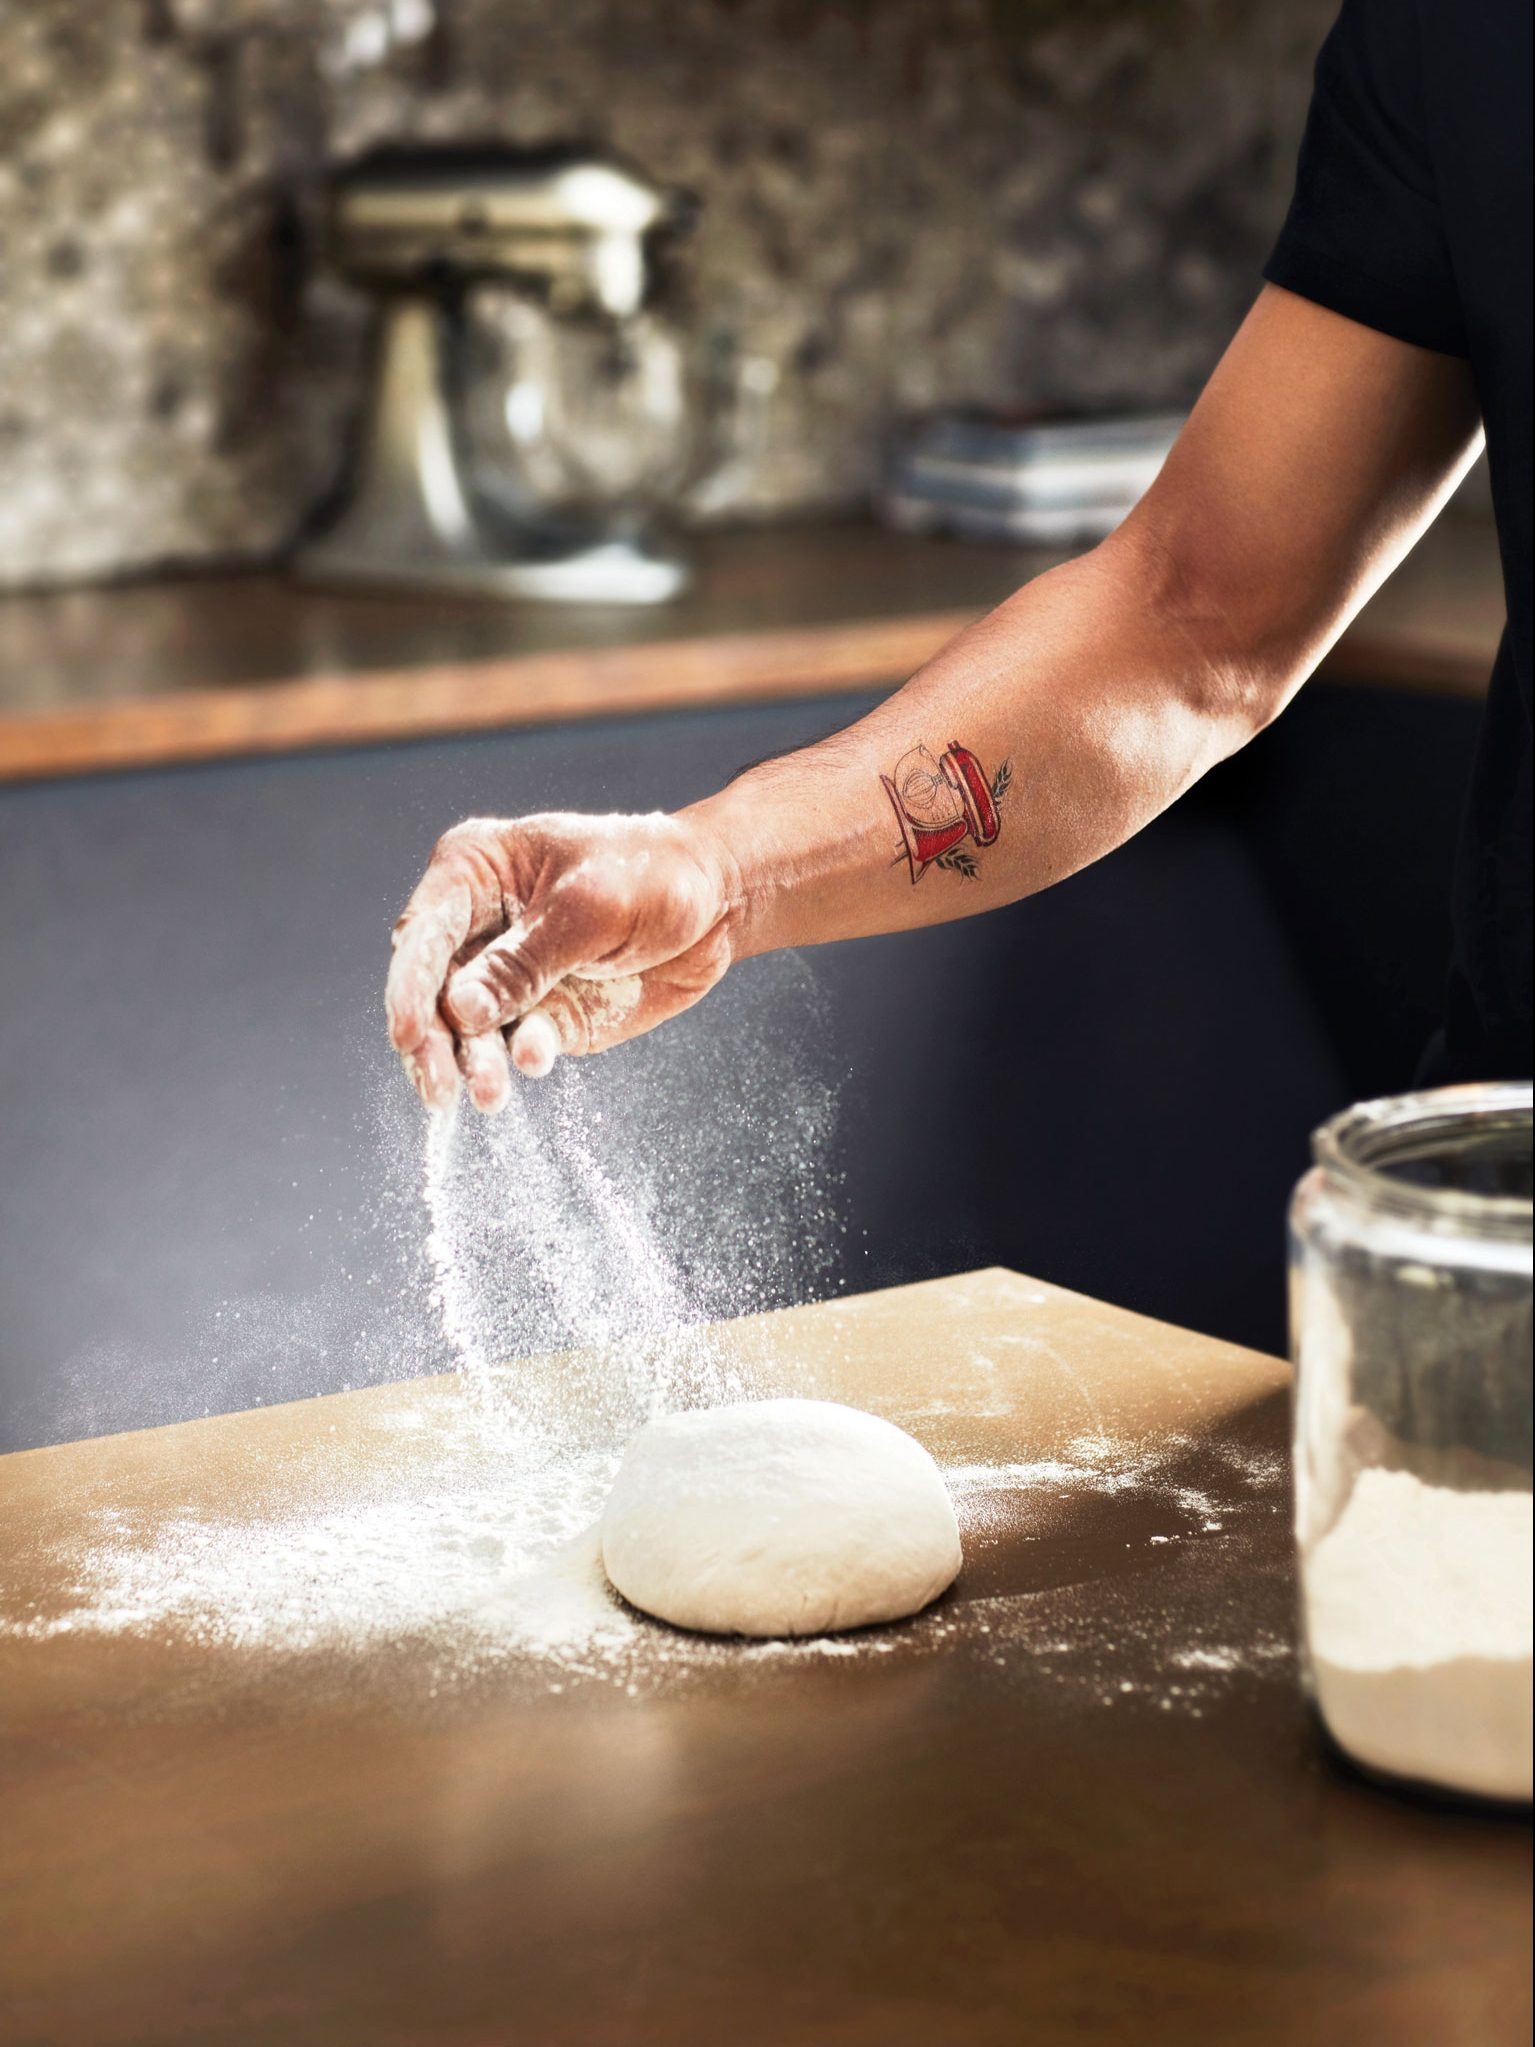 A person sprinkling flour on fresh dough.